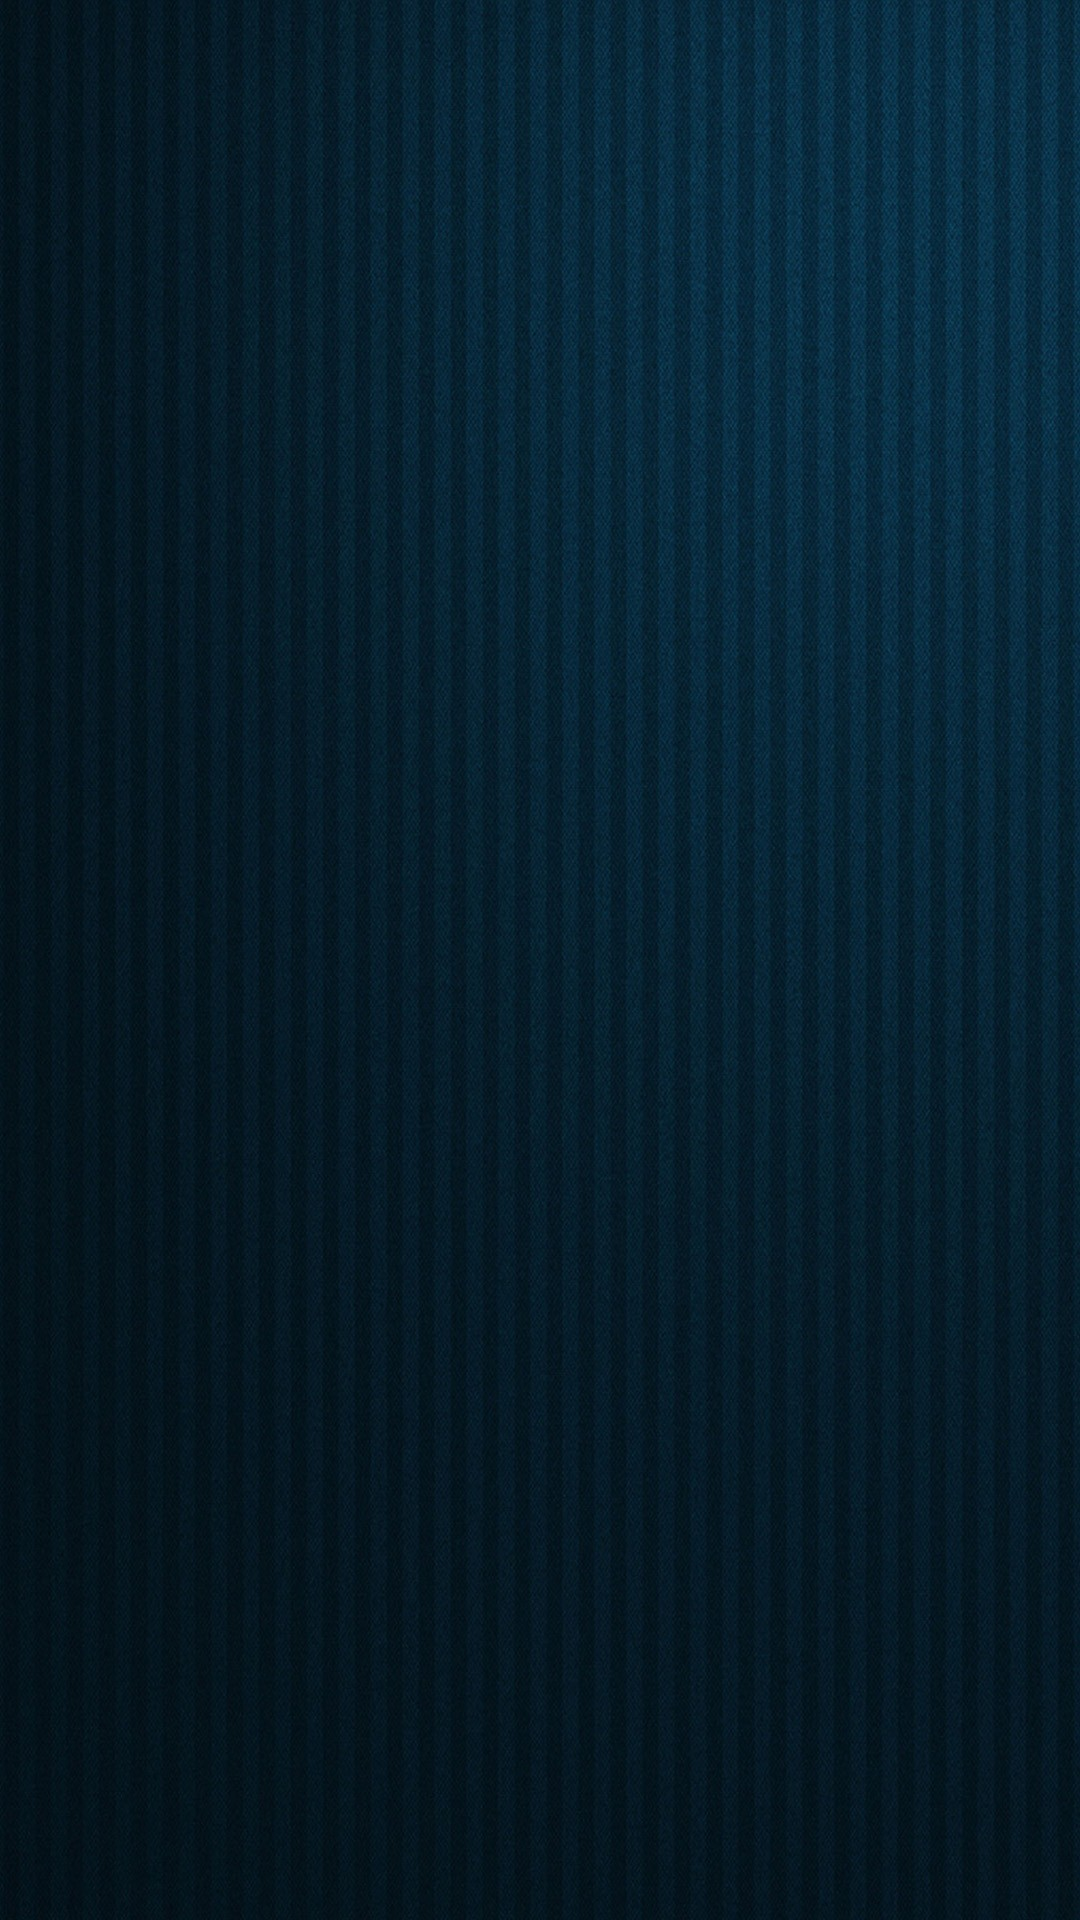 Carbon fiber background download free hd wallpapers for - Iphone carbon wallpaper ...